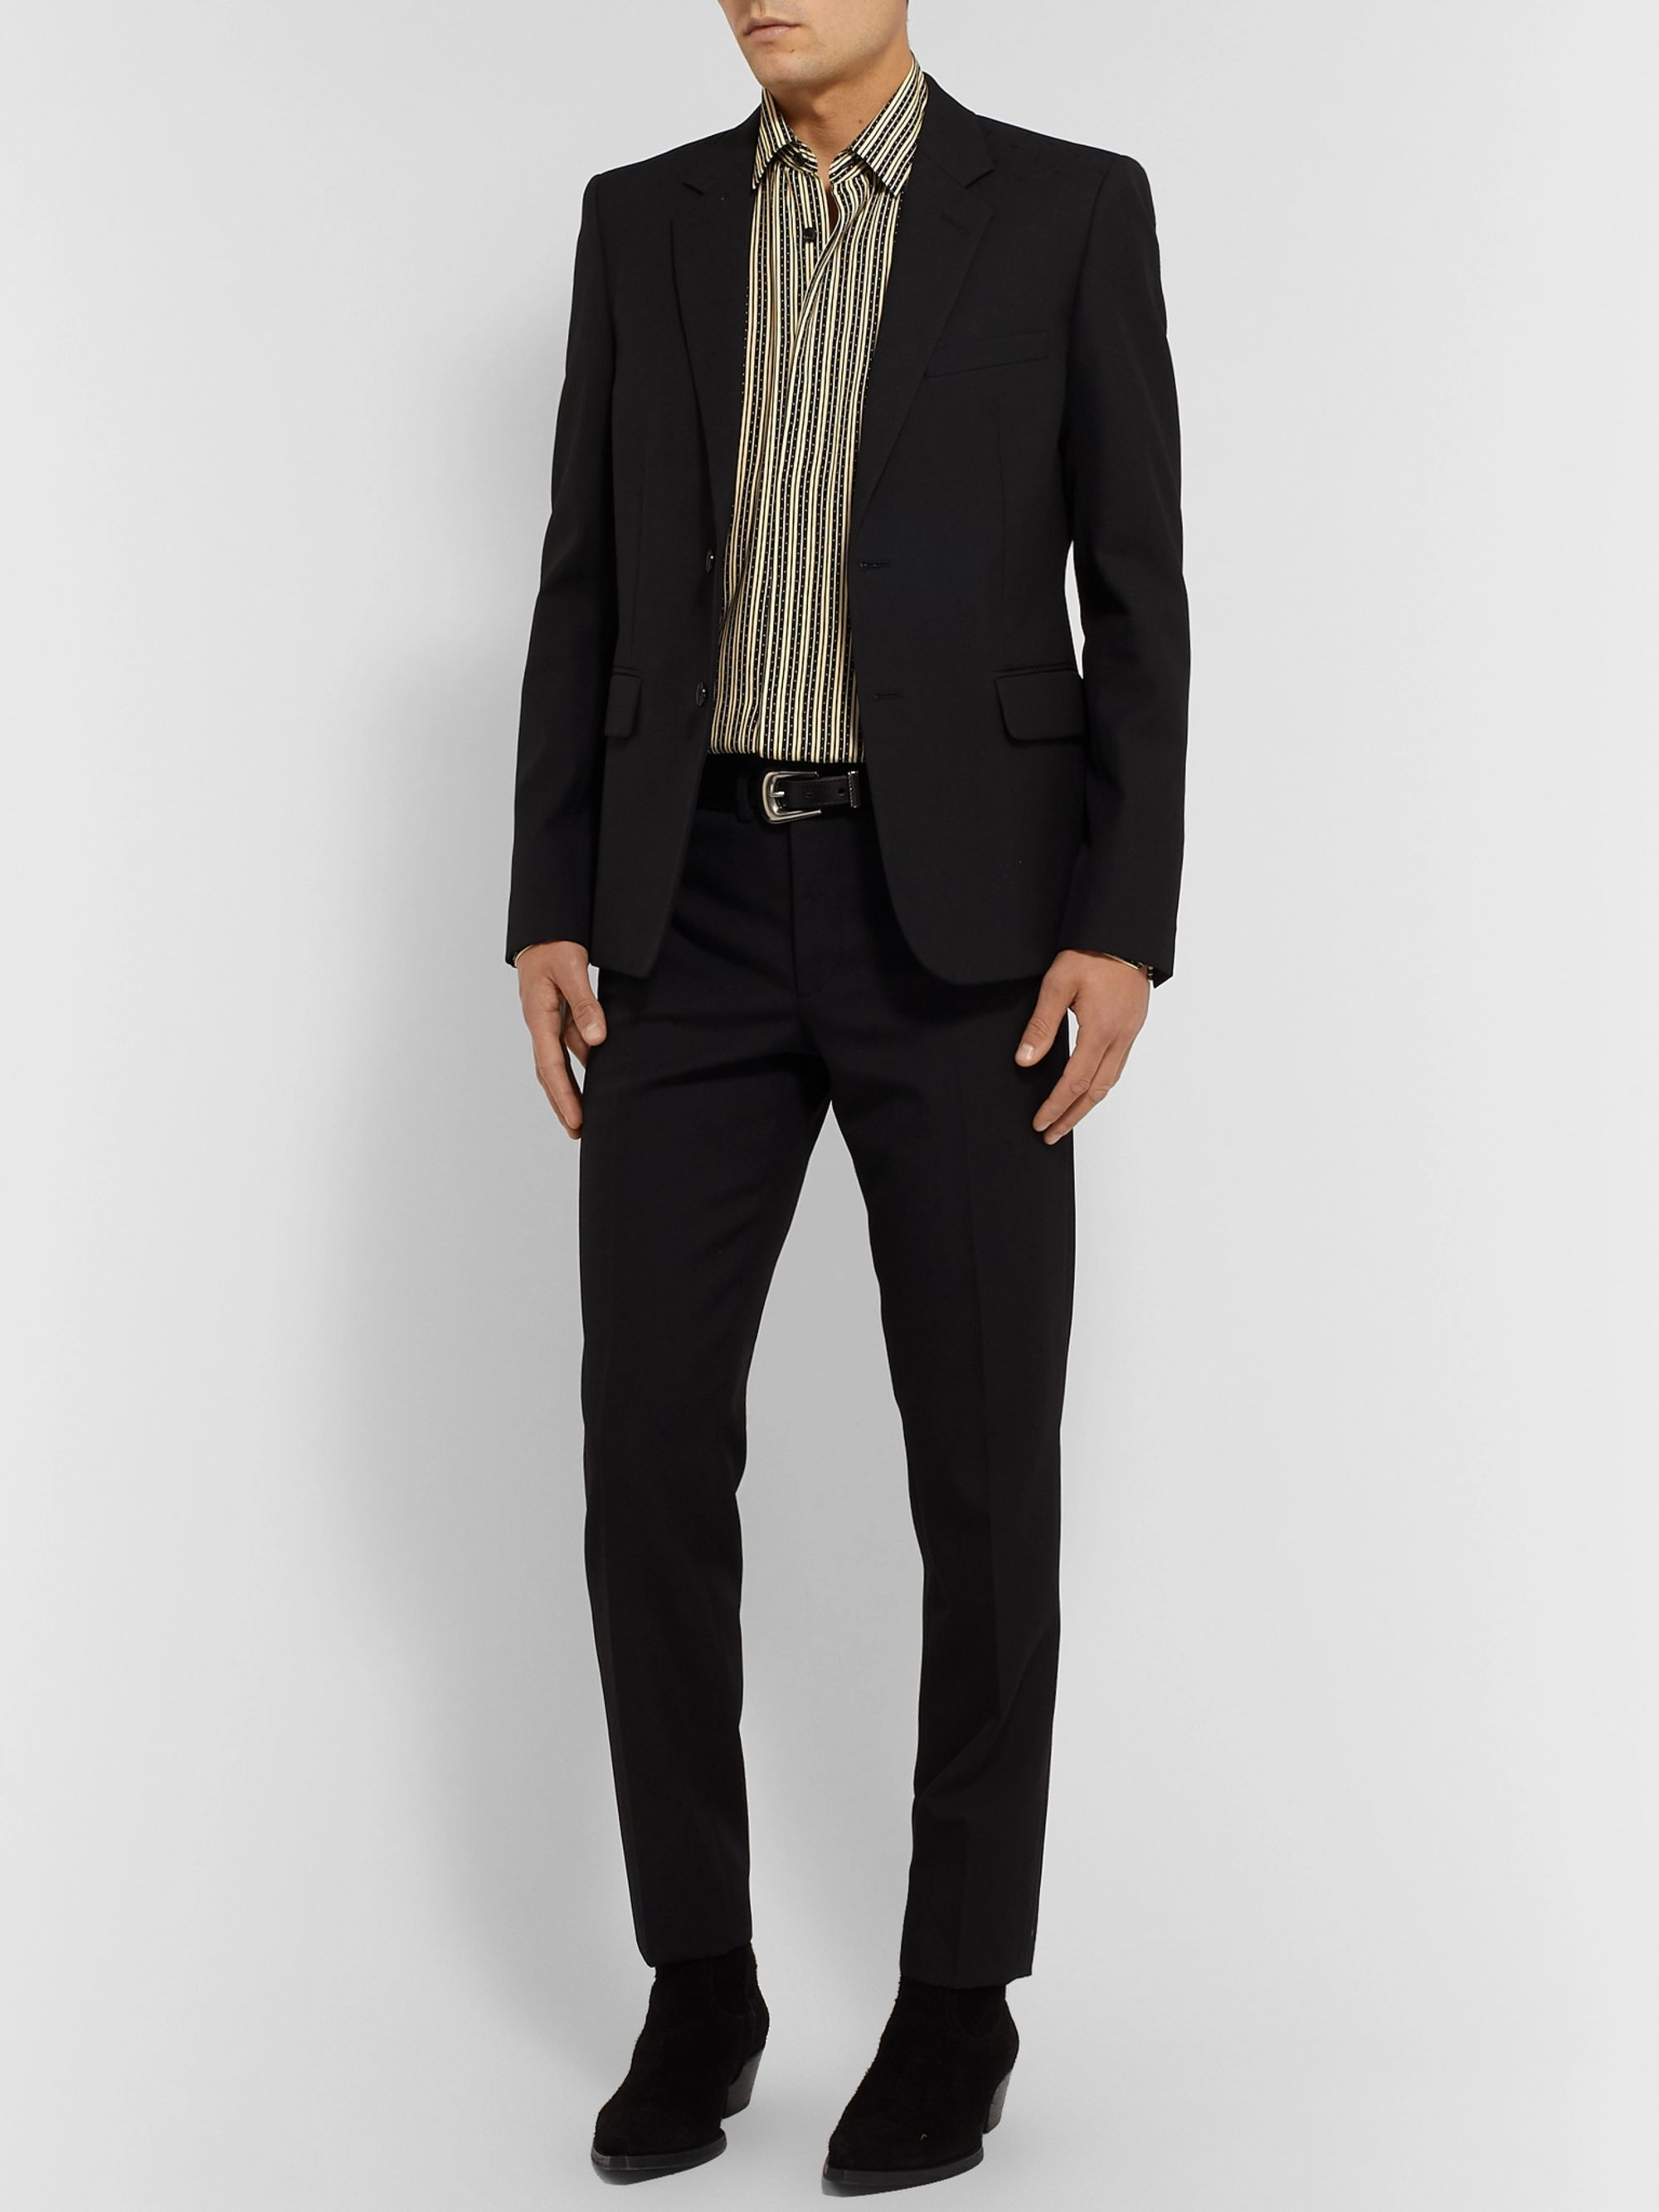 SAINT LAURENT Striped Voile Shirt